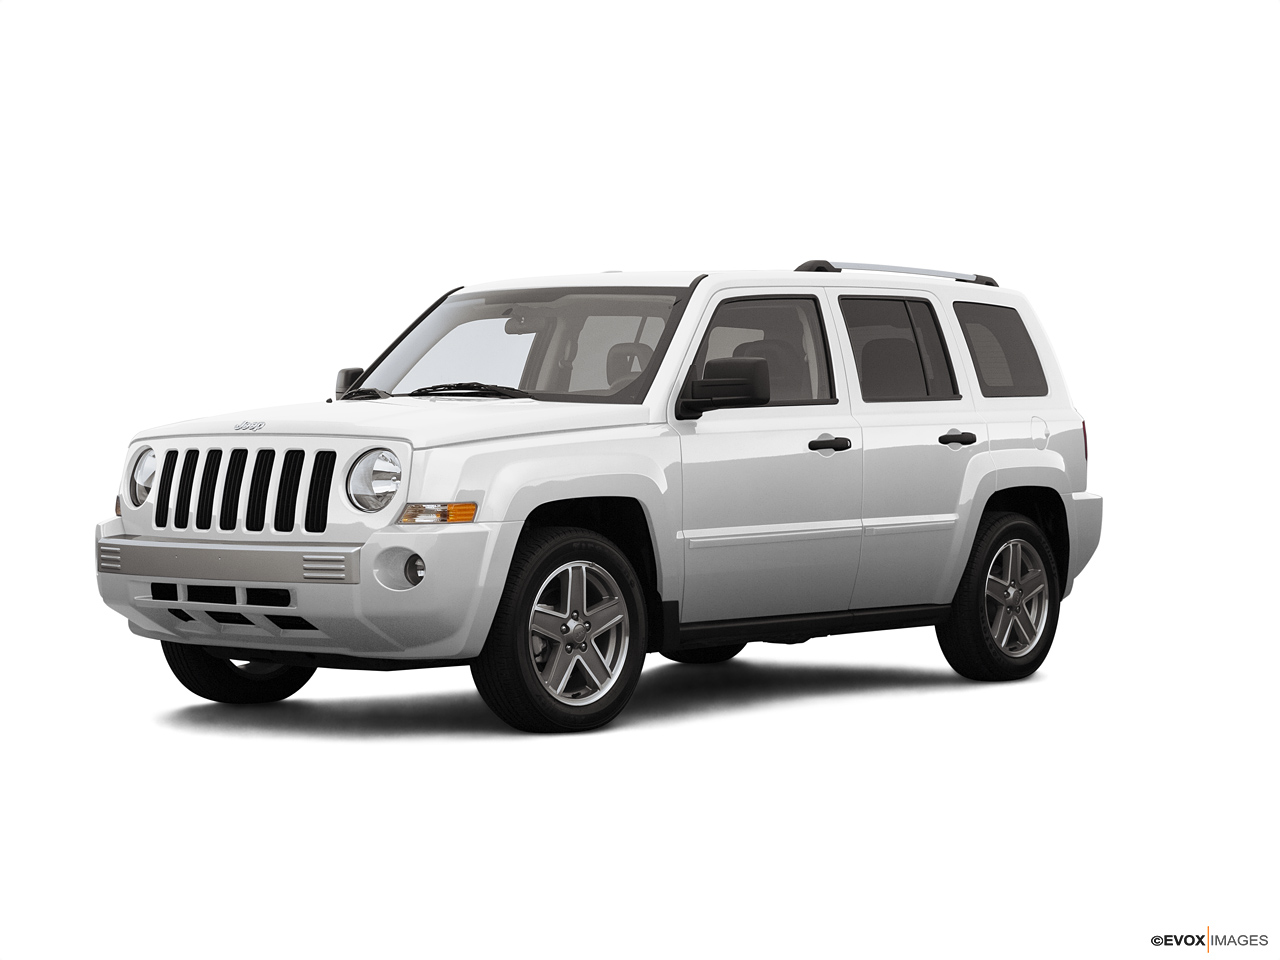 small resolution of jeep service by top rated mechanics at the convenience of your home or office